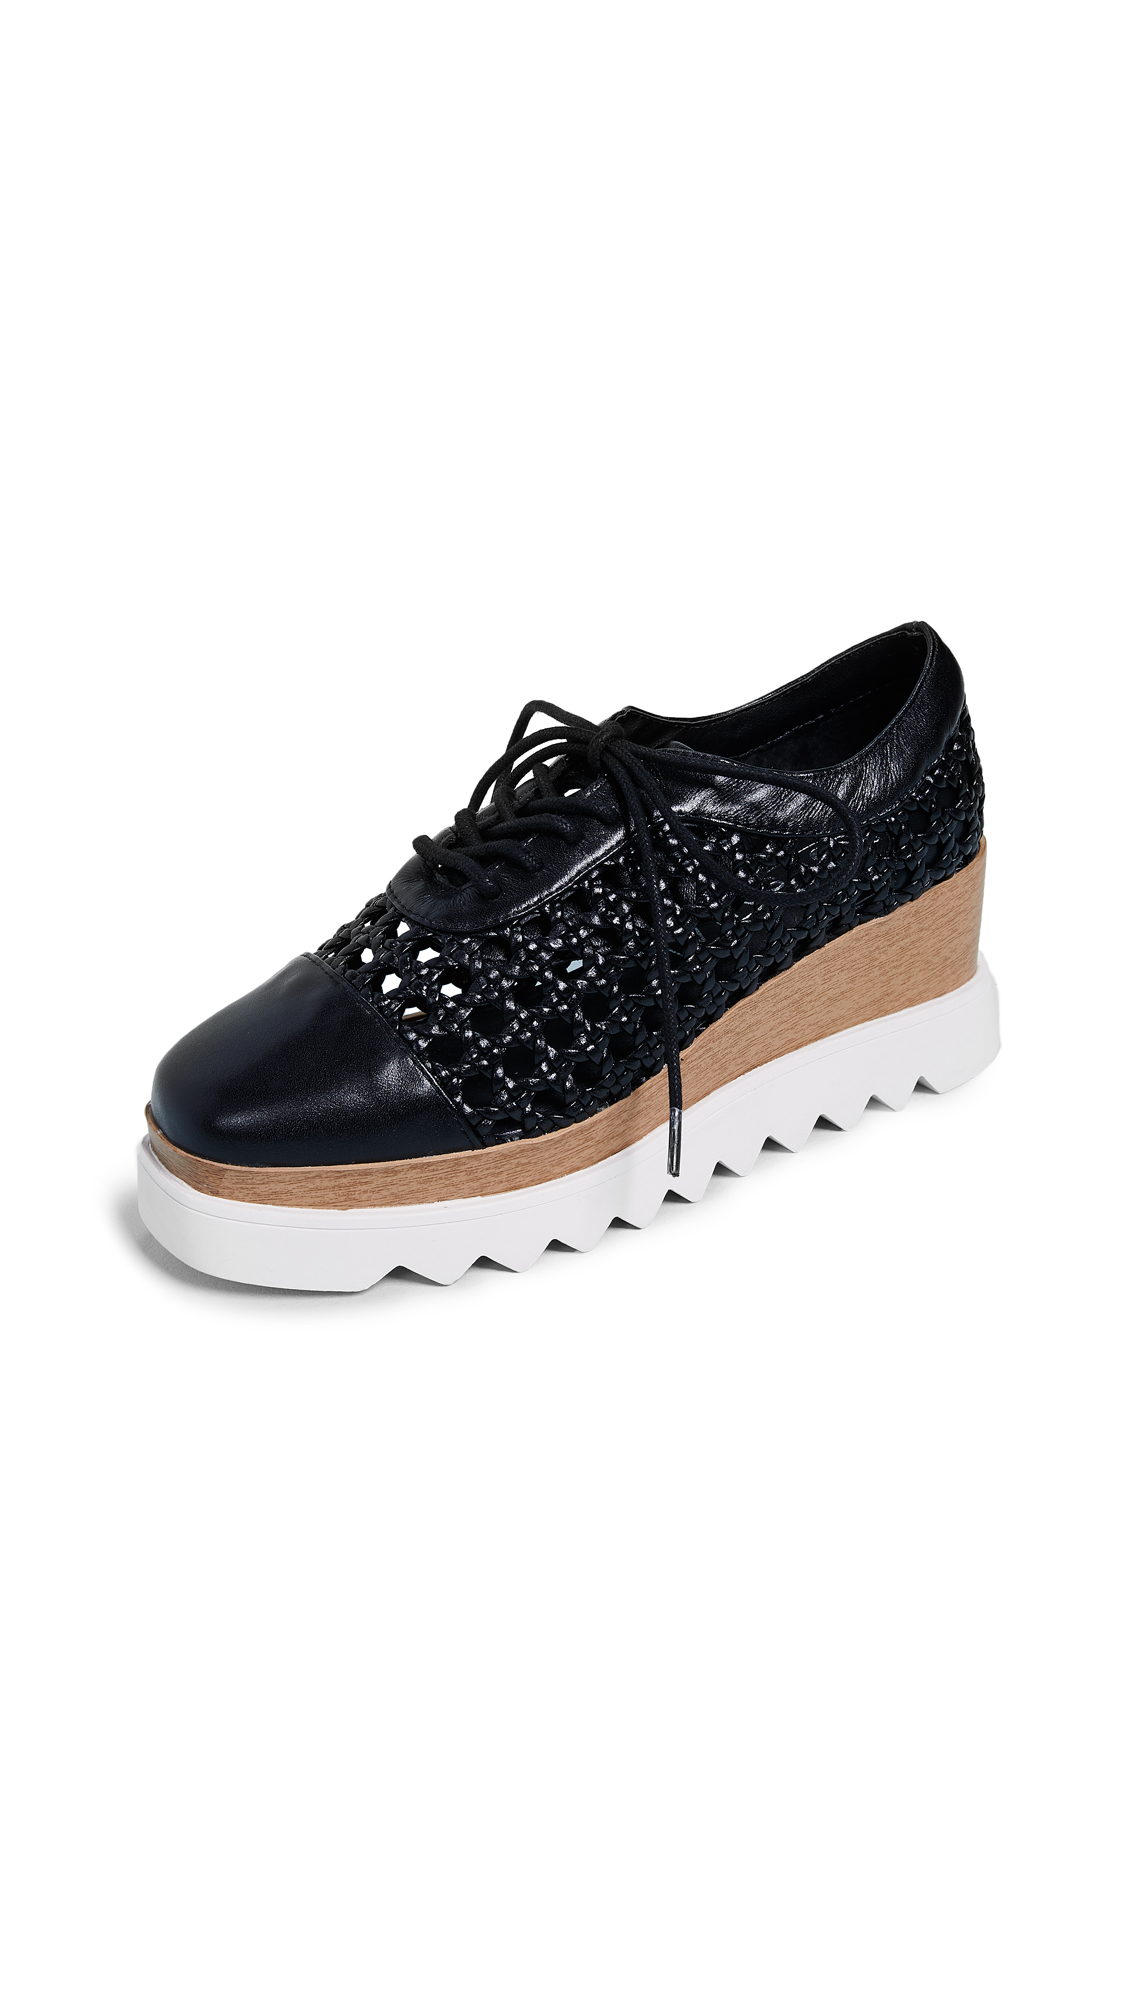 Sol Sana Fremont Wedge Oxfords